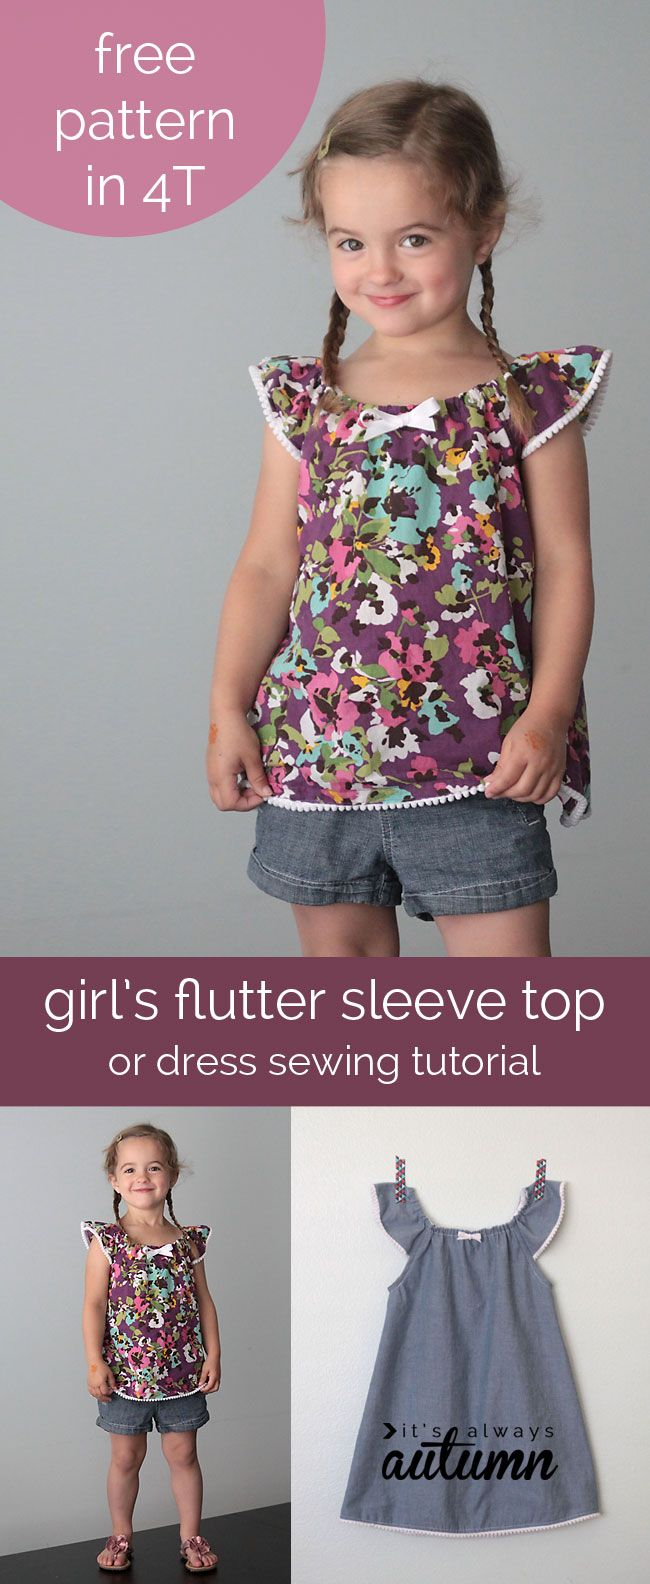 girl\'s flutter sleeve dress or top sewing tutorial & free pattern in ...